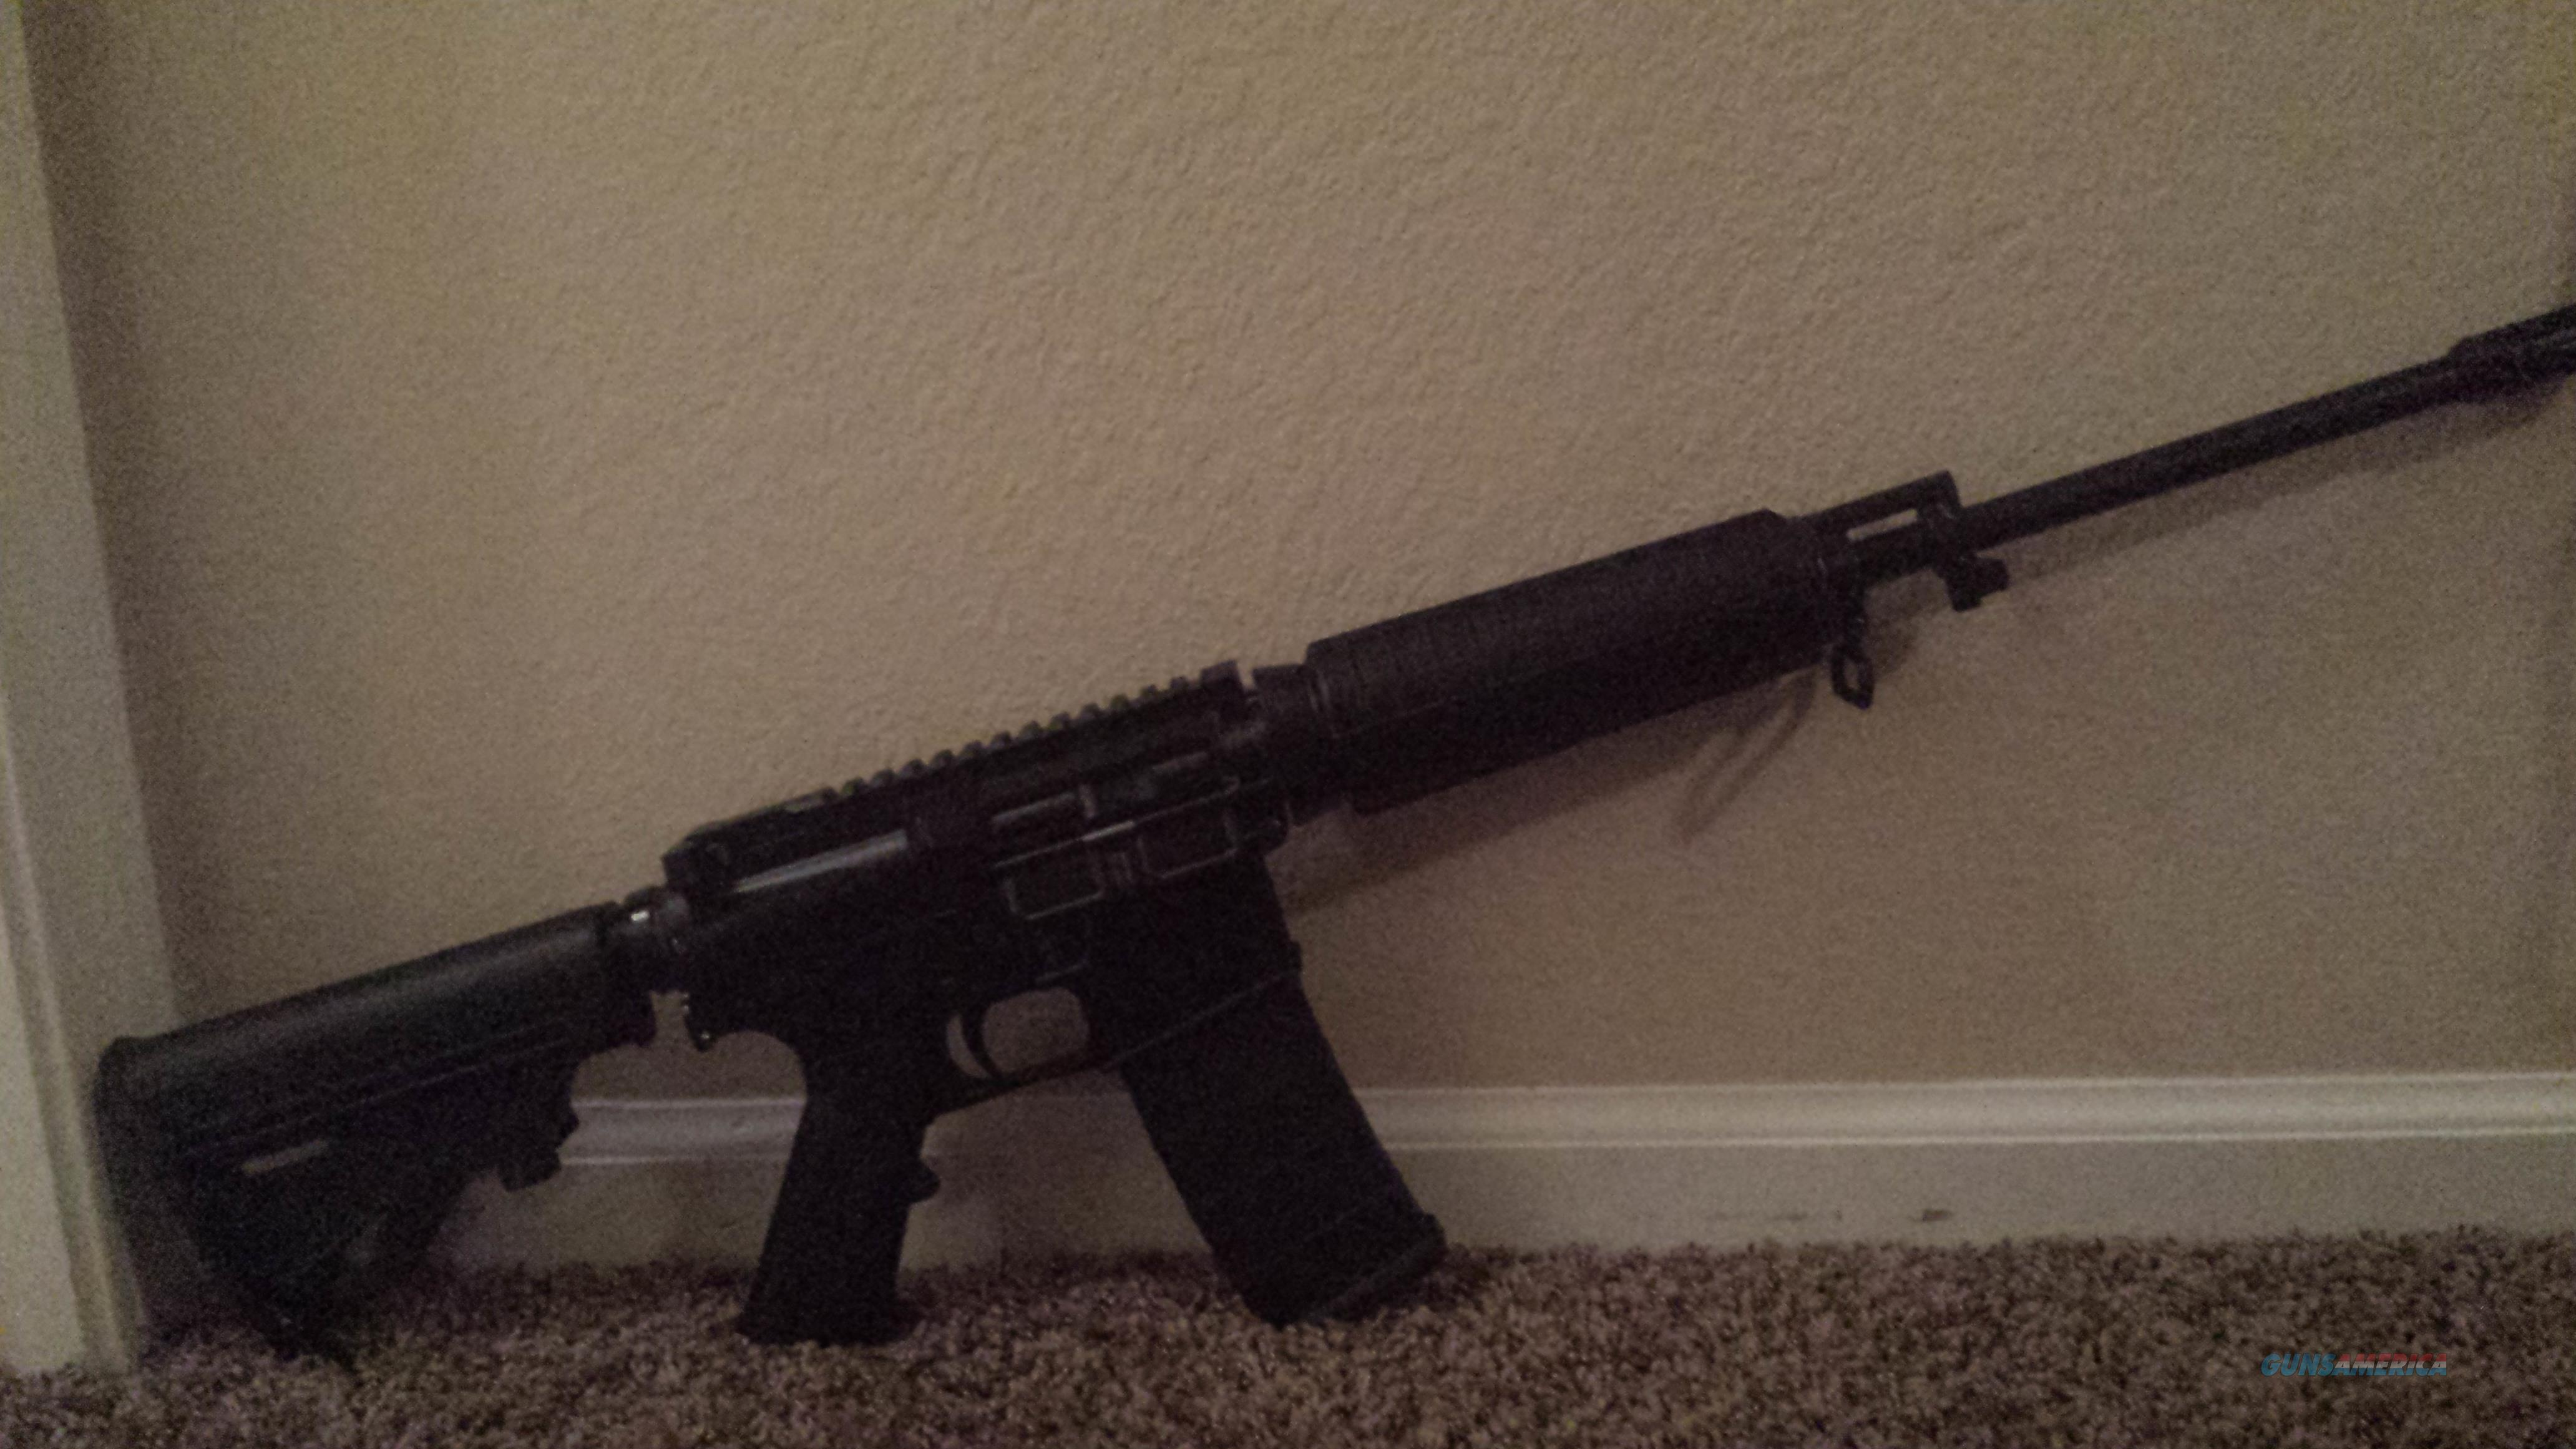 Bushmaster upper with New Frontier lower  Guns > Rifles > Bushmaster Rifles > Complete Rifles